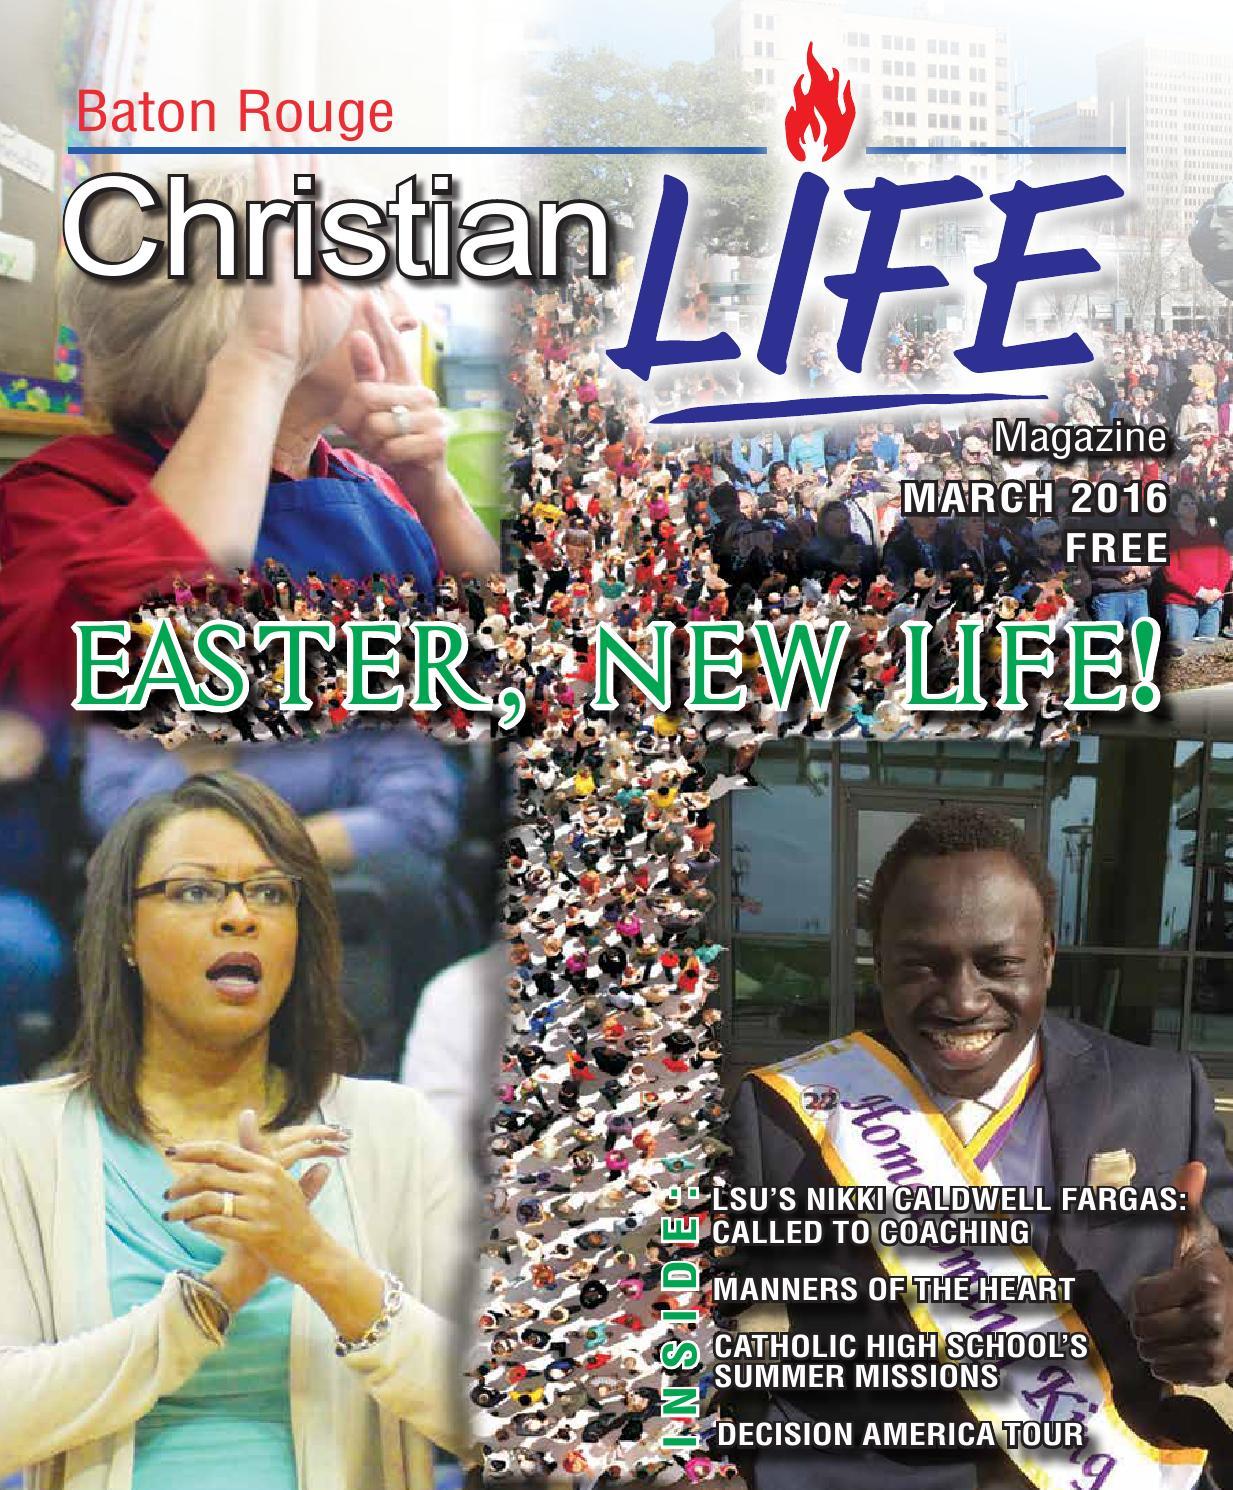 Baton rouge christian personals